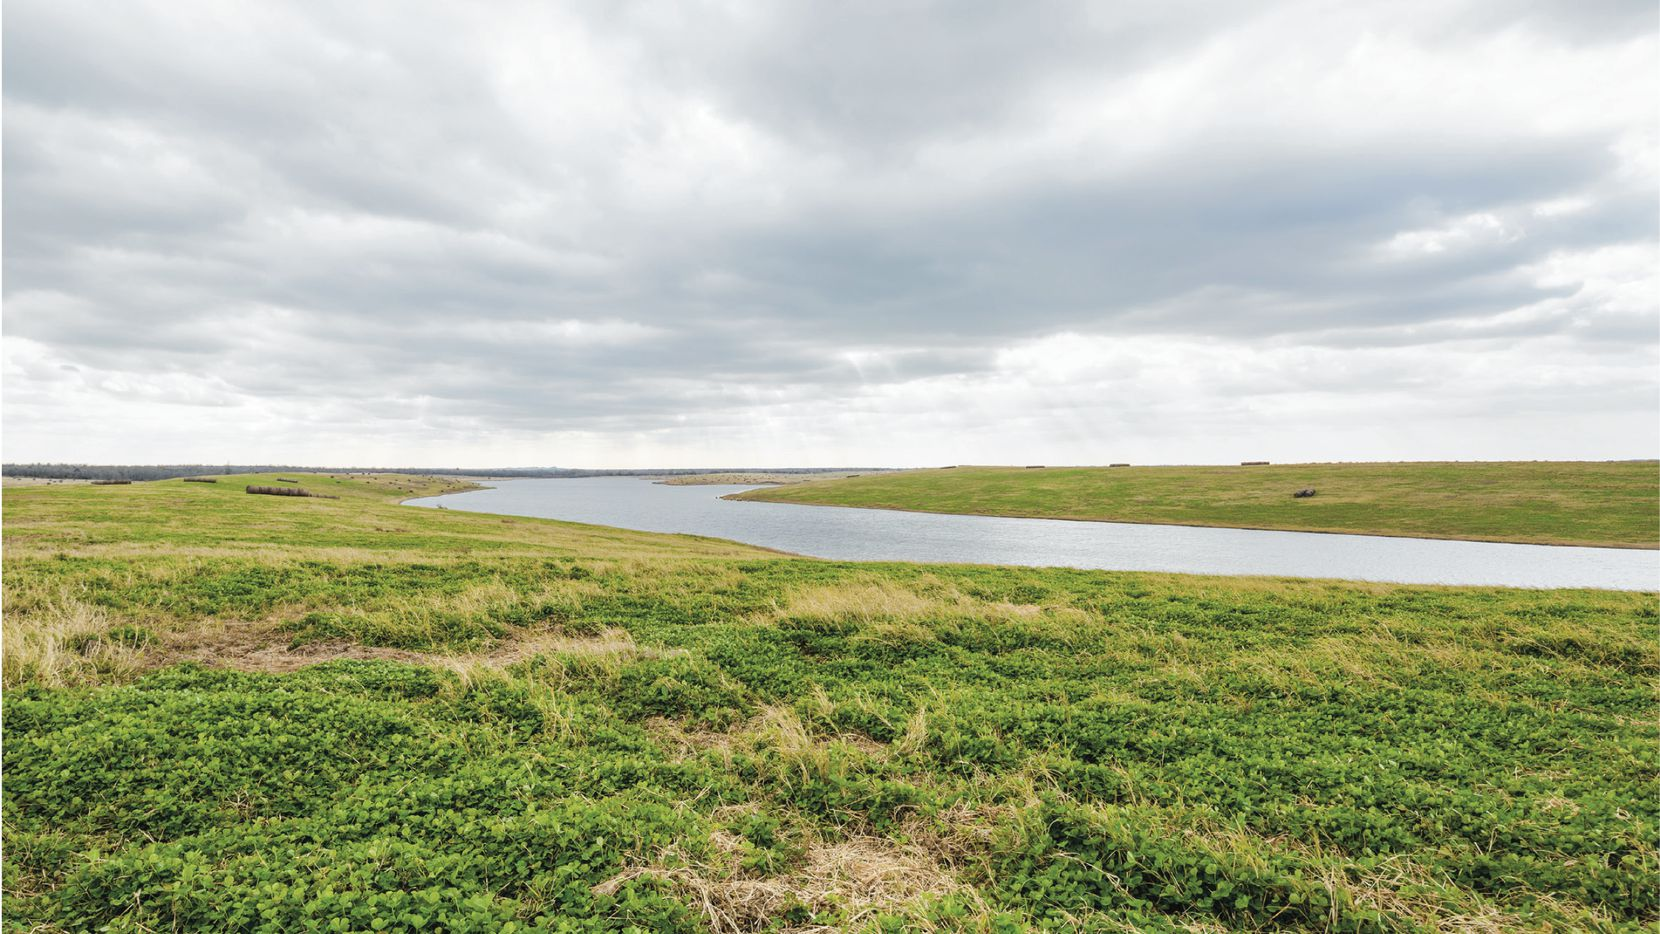 Sandow Lakes Ranch comes with wildlife, mineral rights, 14 lakes and a smelter that once produced aluminum.